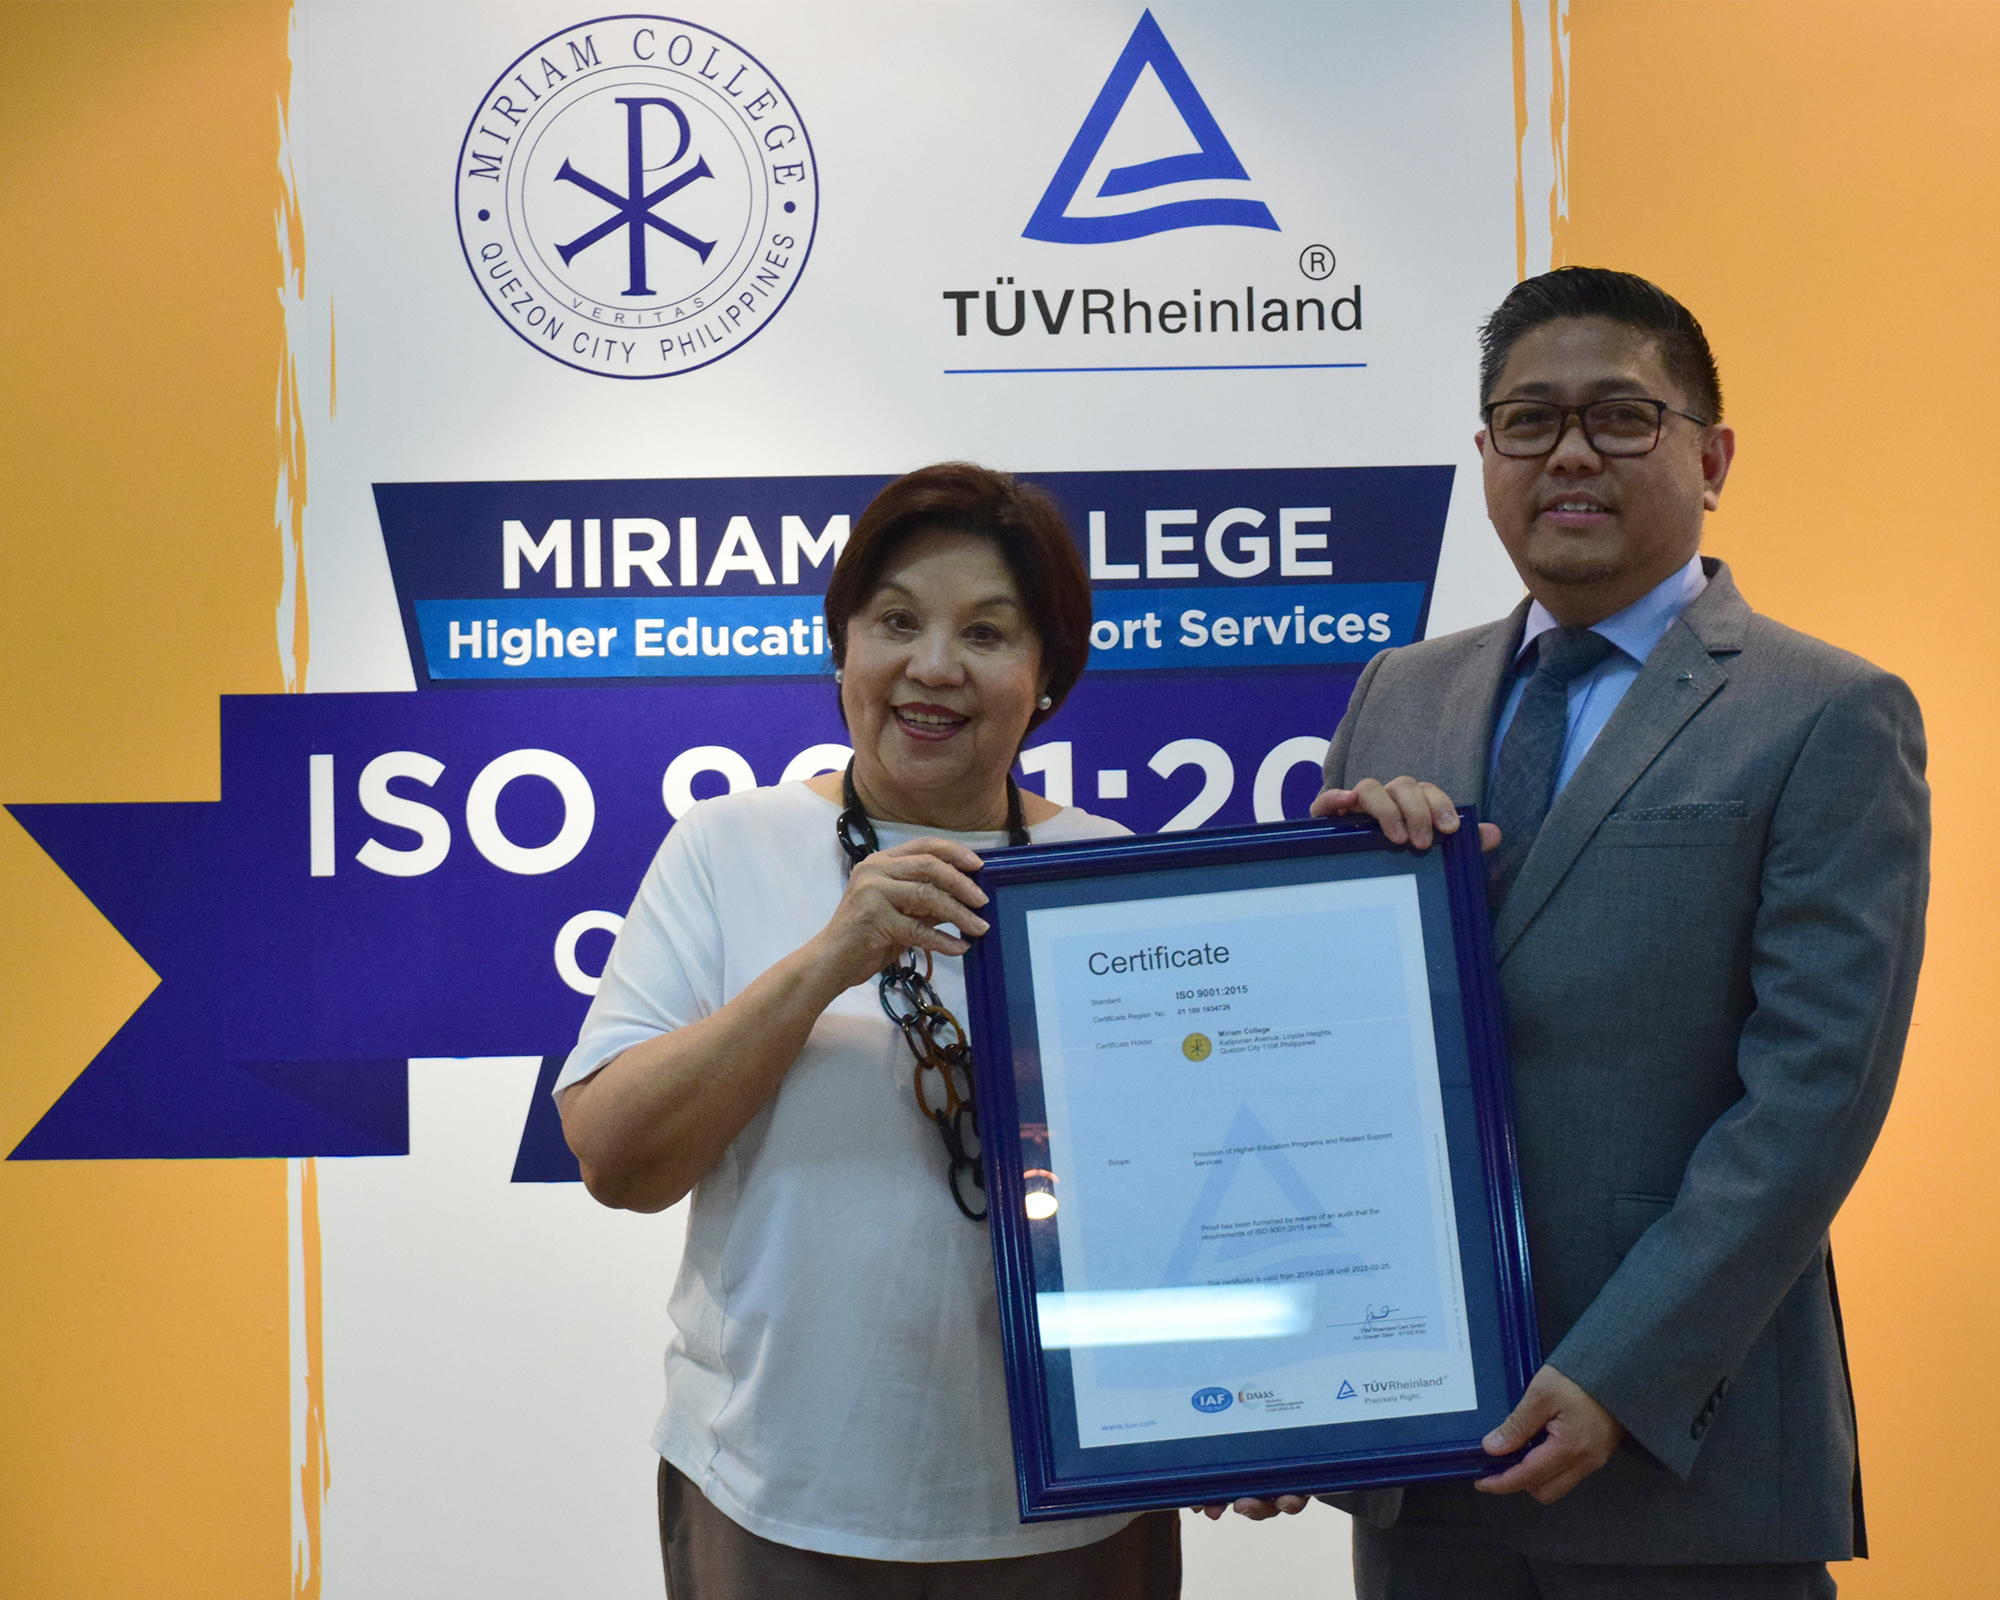 Miriam College is ISO 9001: 2015 certified for the Higher Education Unit and Support Services